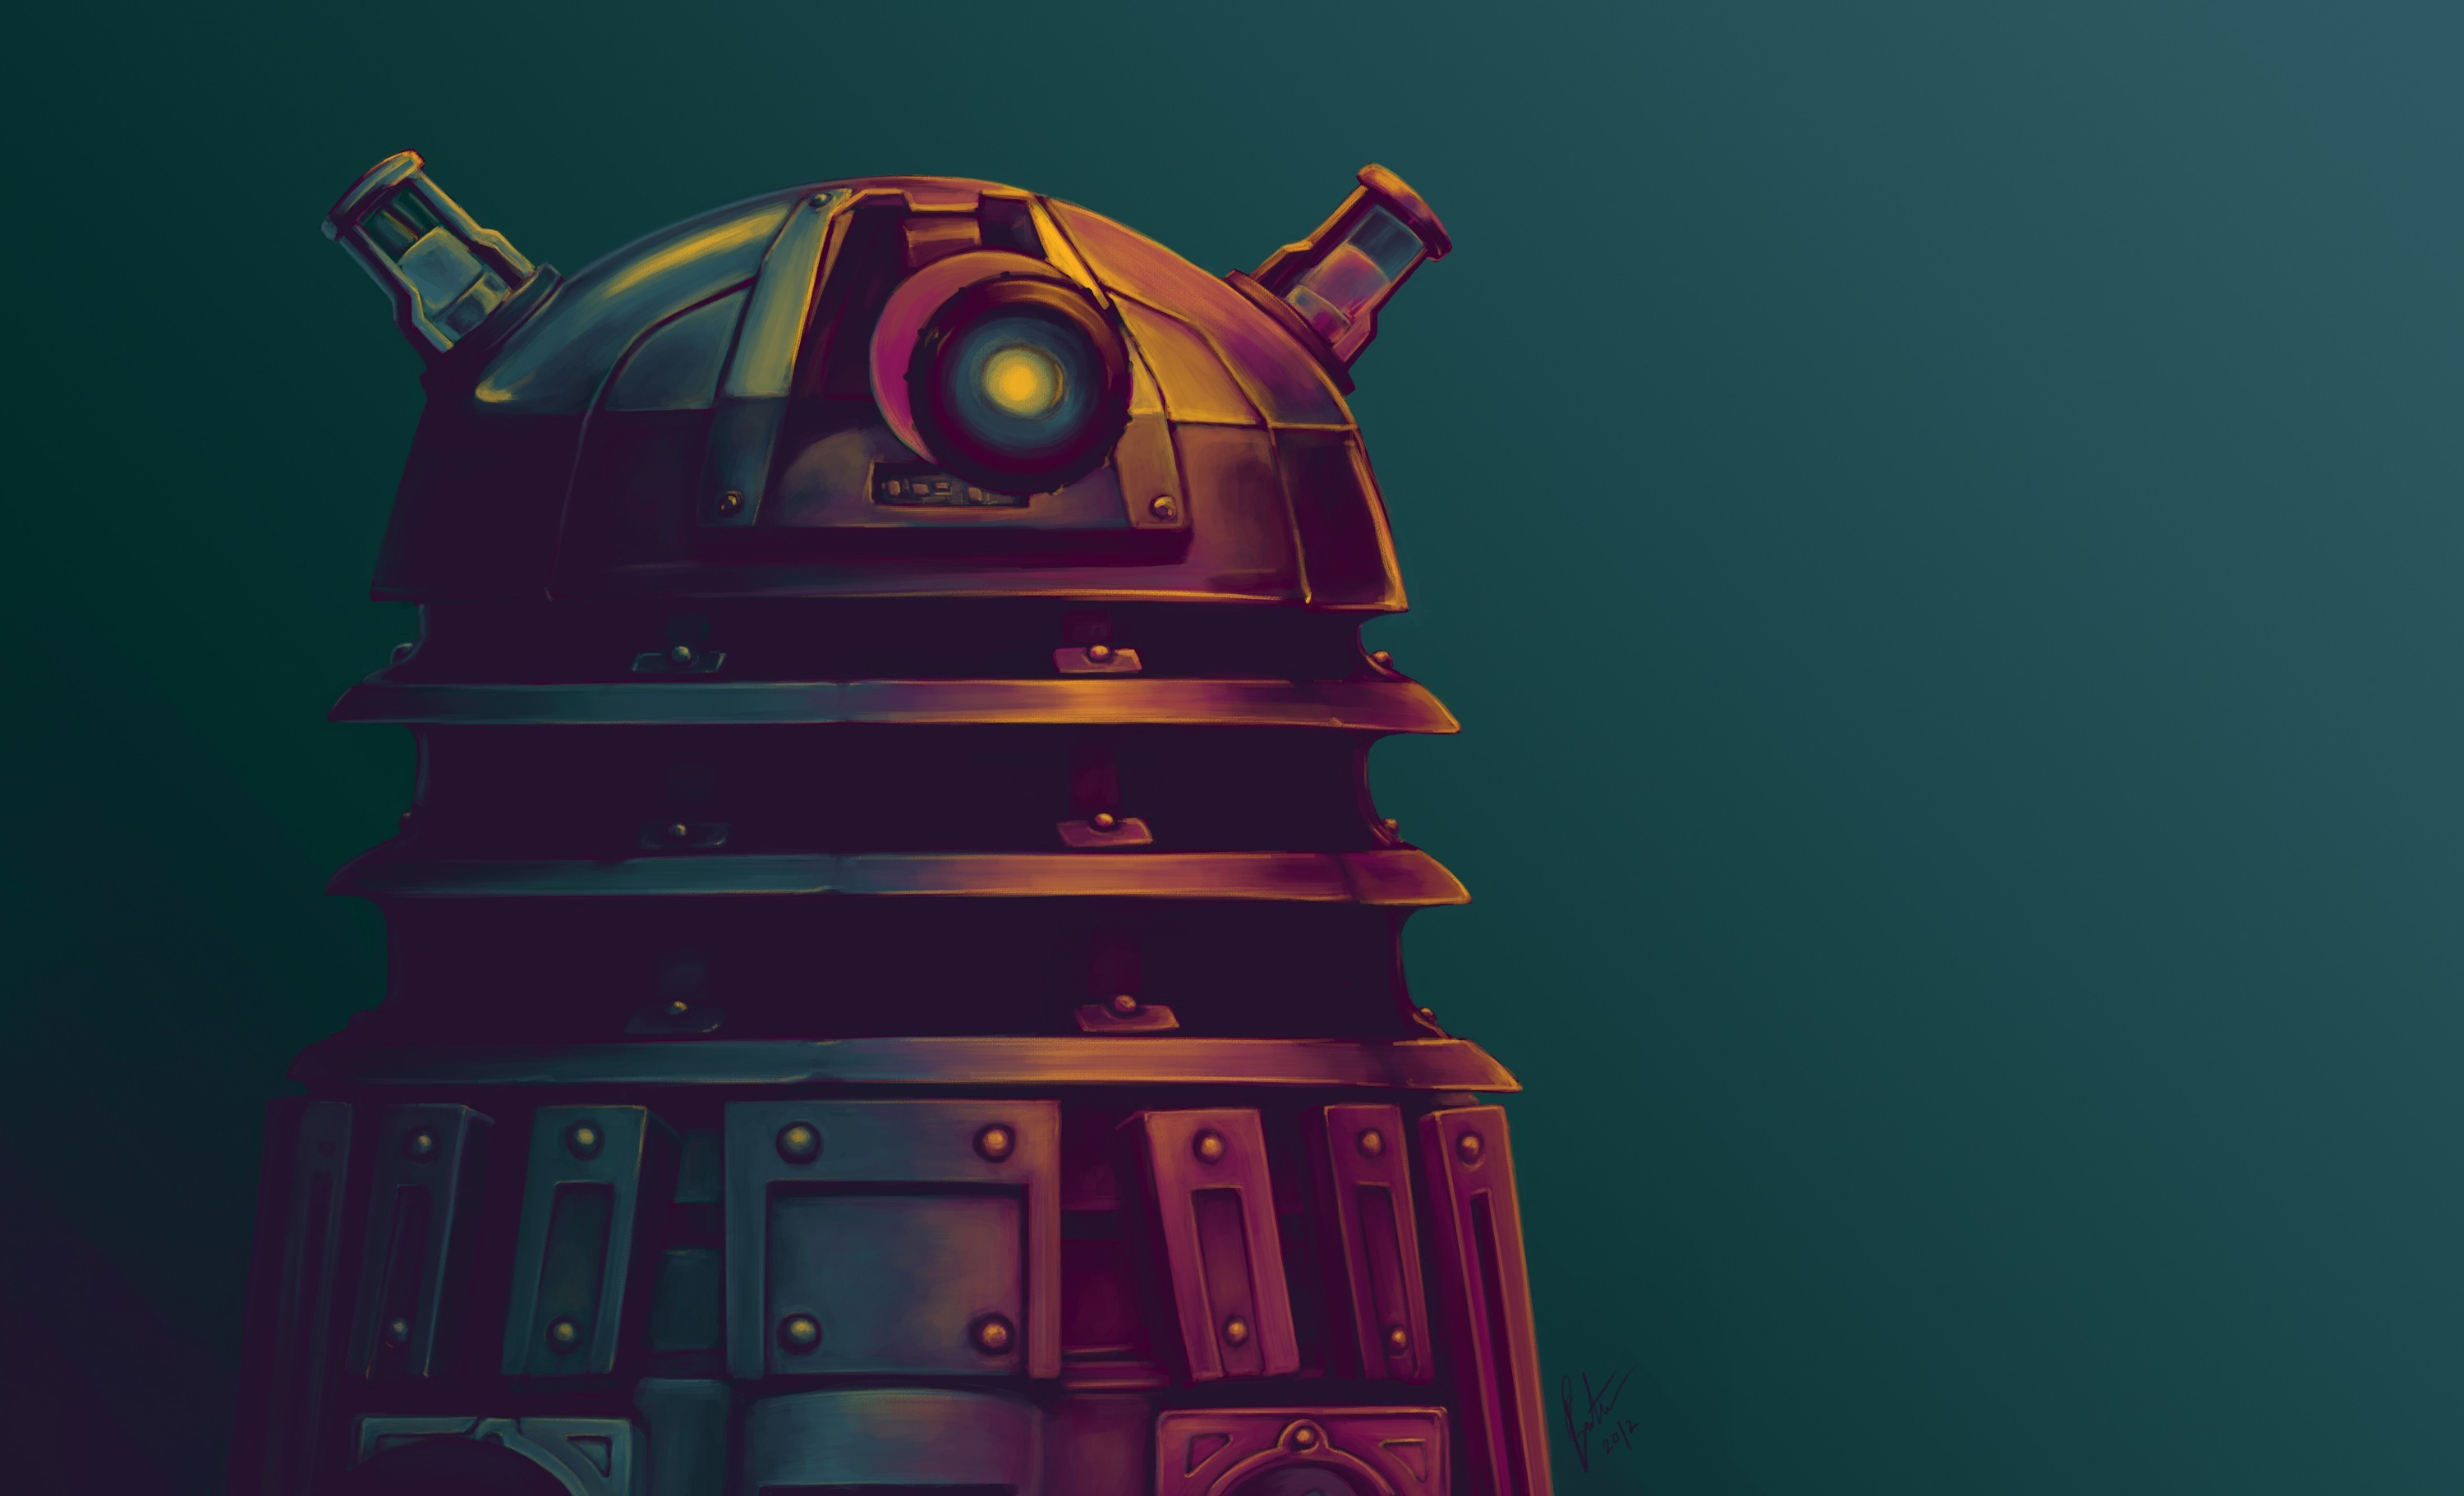 3000x1821 #Daleks, #artwork, #Doctor Who, wallpaper